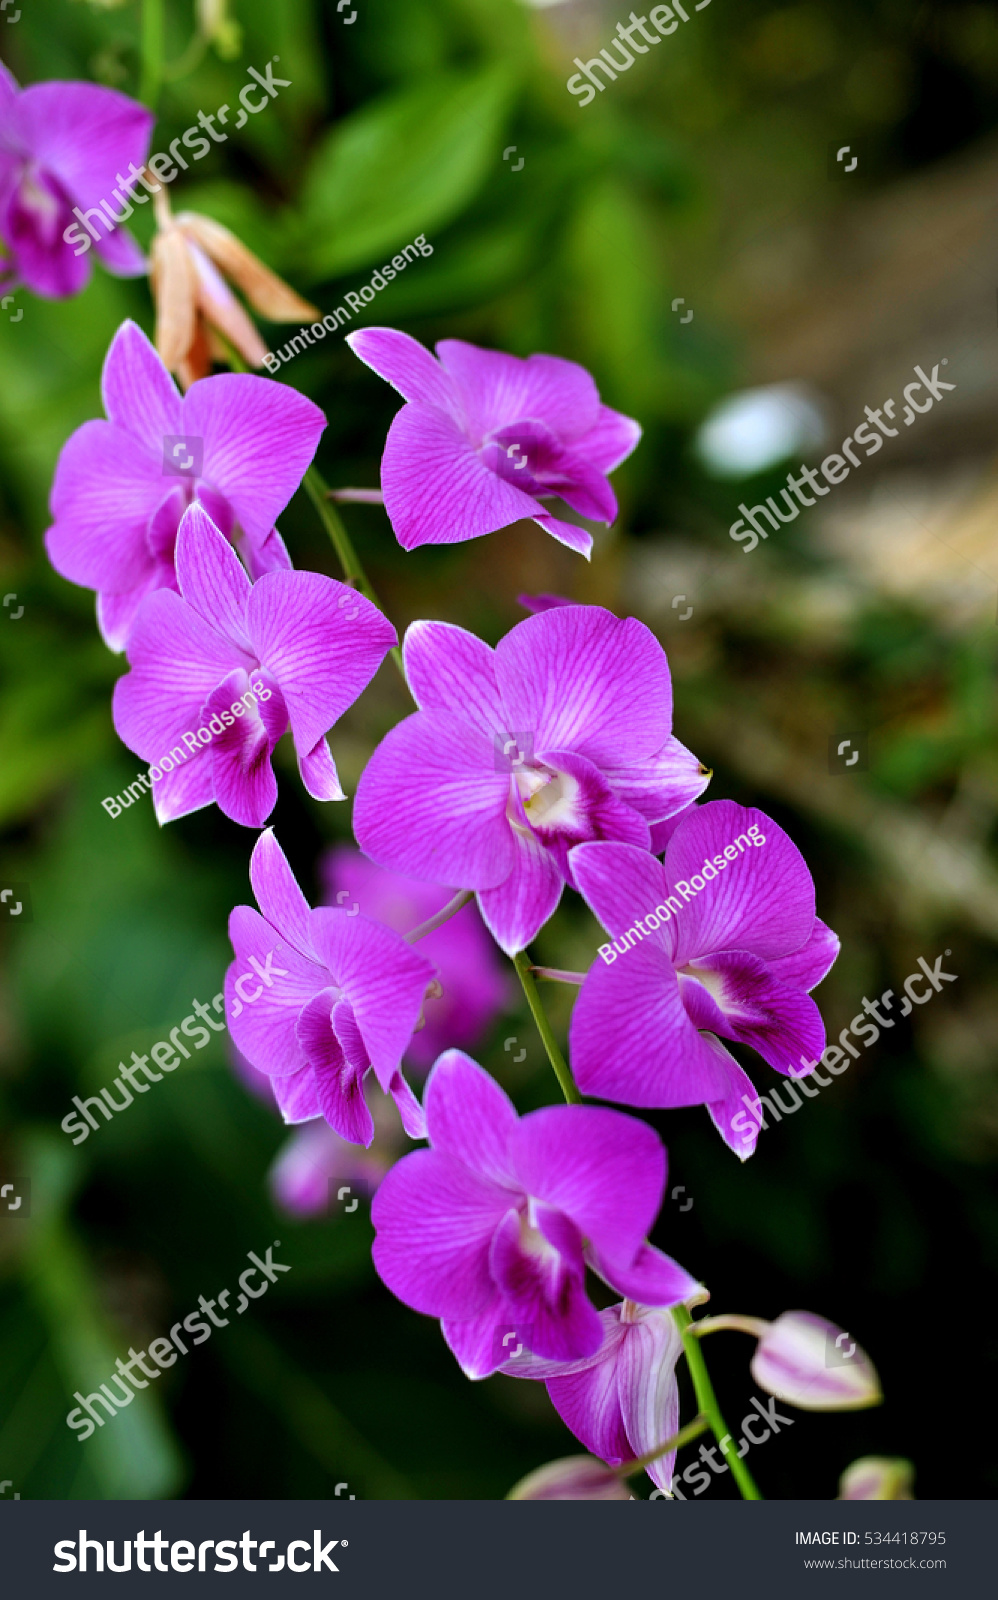 Orchid flowers beautiful orchid natural flowers stock photo edit orchid flowers beautiful orchid natural flowers izmirmasajfo